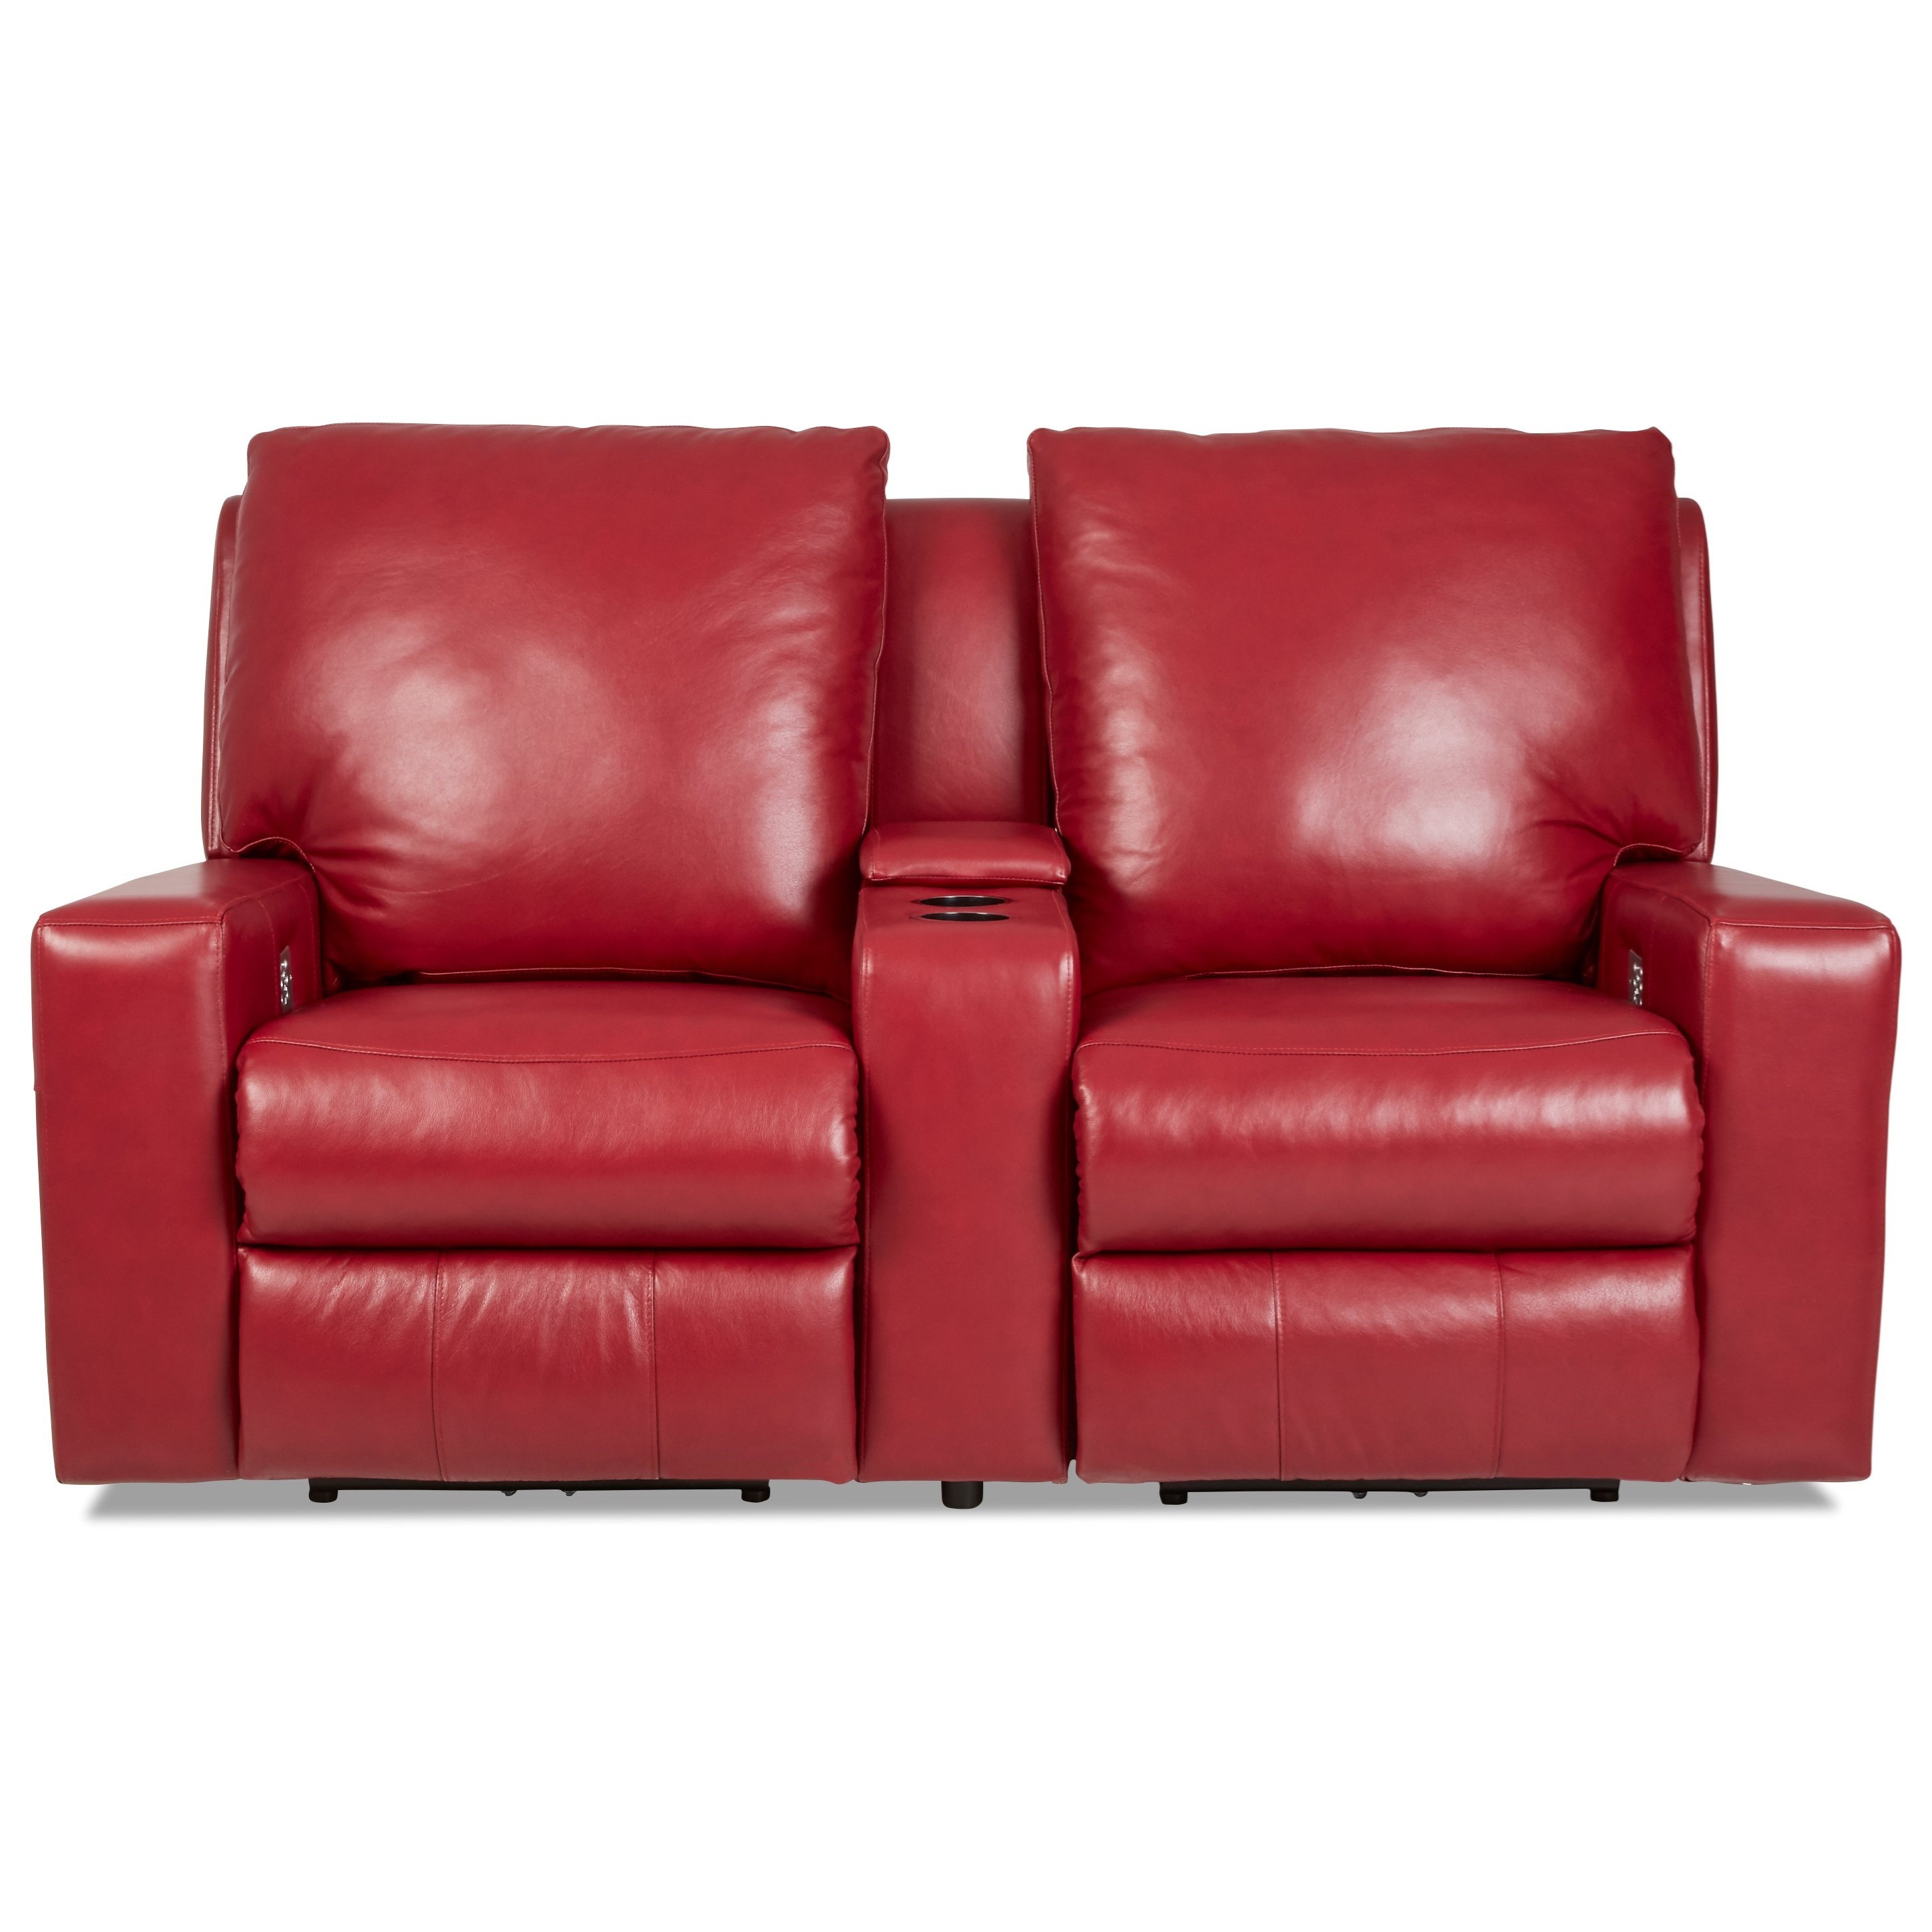 Alliser Pwr Recl Sectional w/ Pwr Headrests & Lumbar by Klaussner at Pilgrim Furniture City